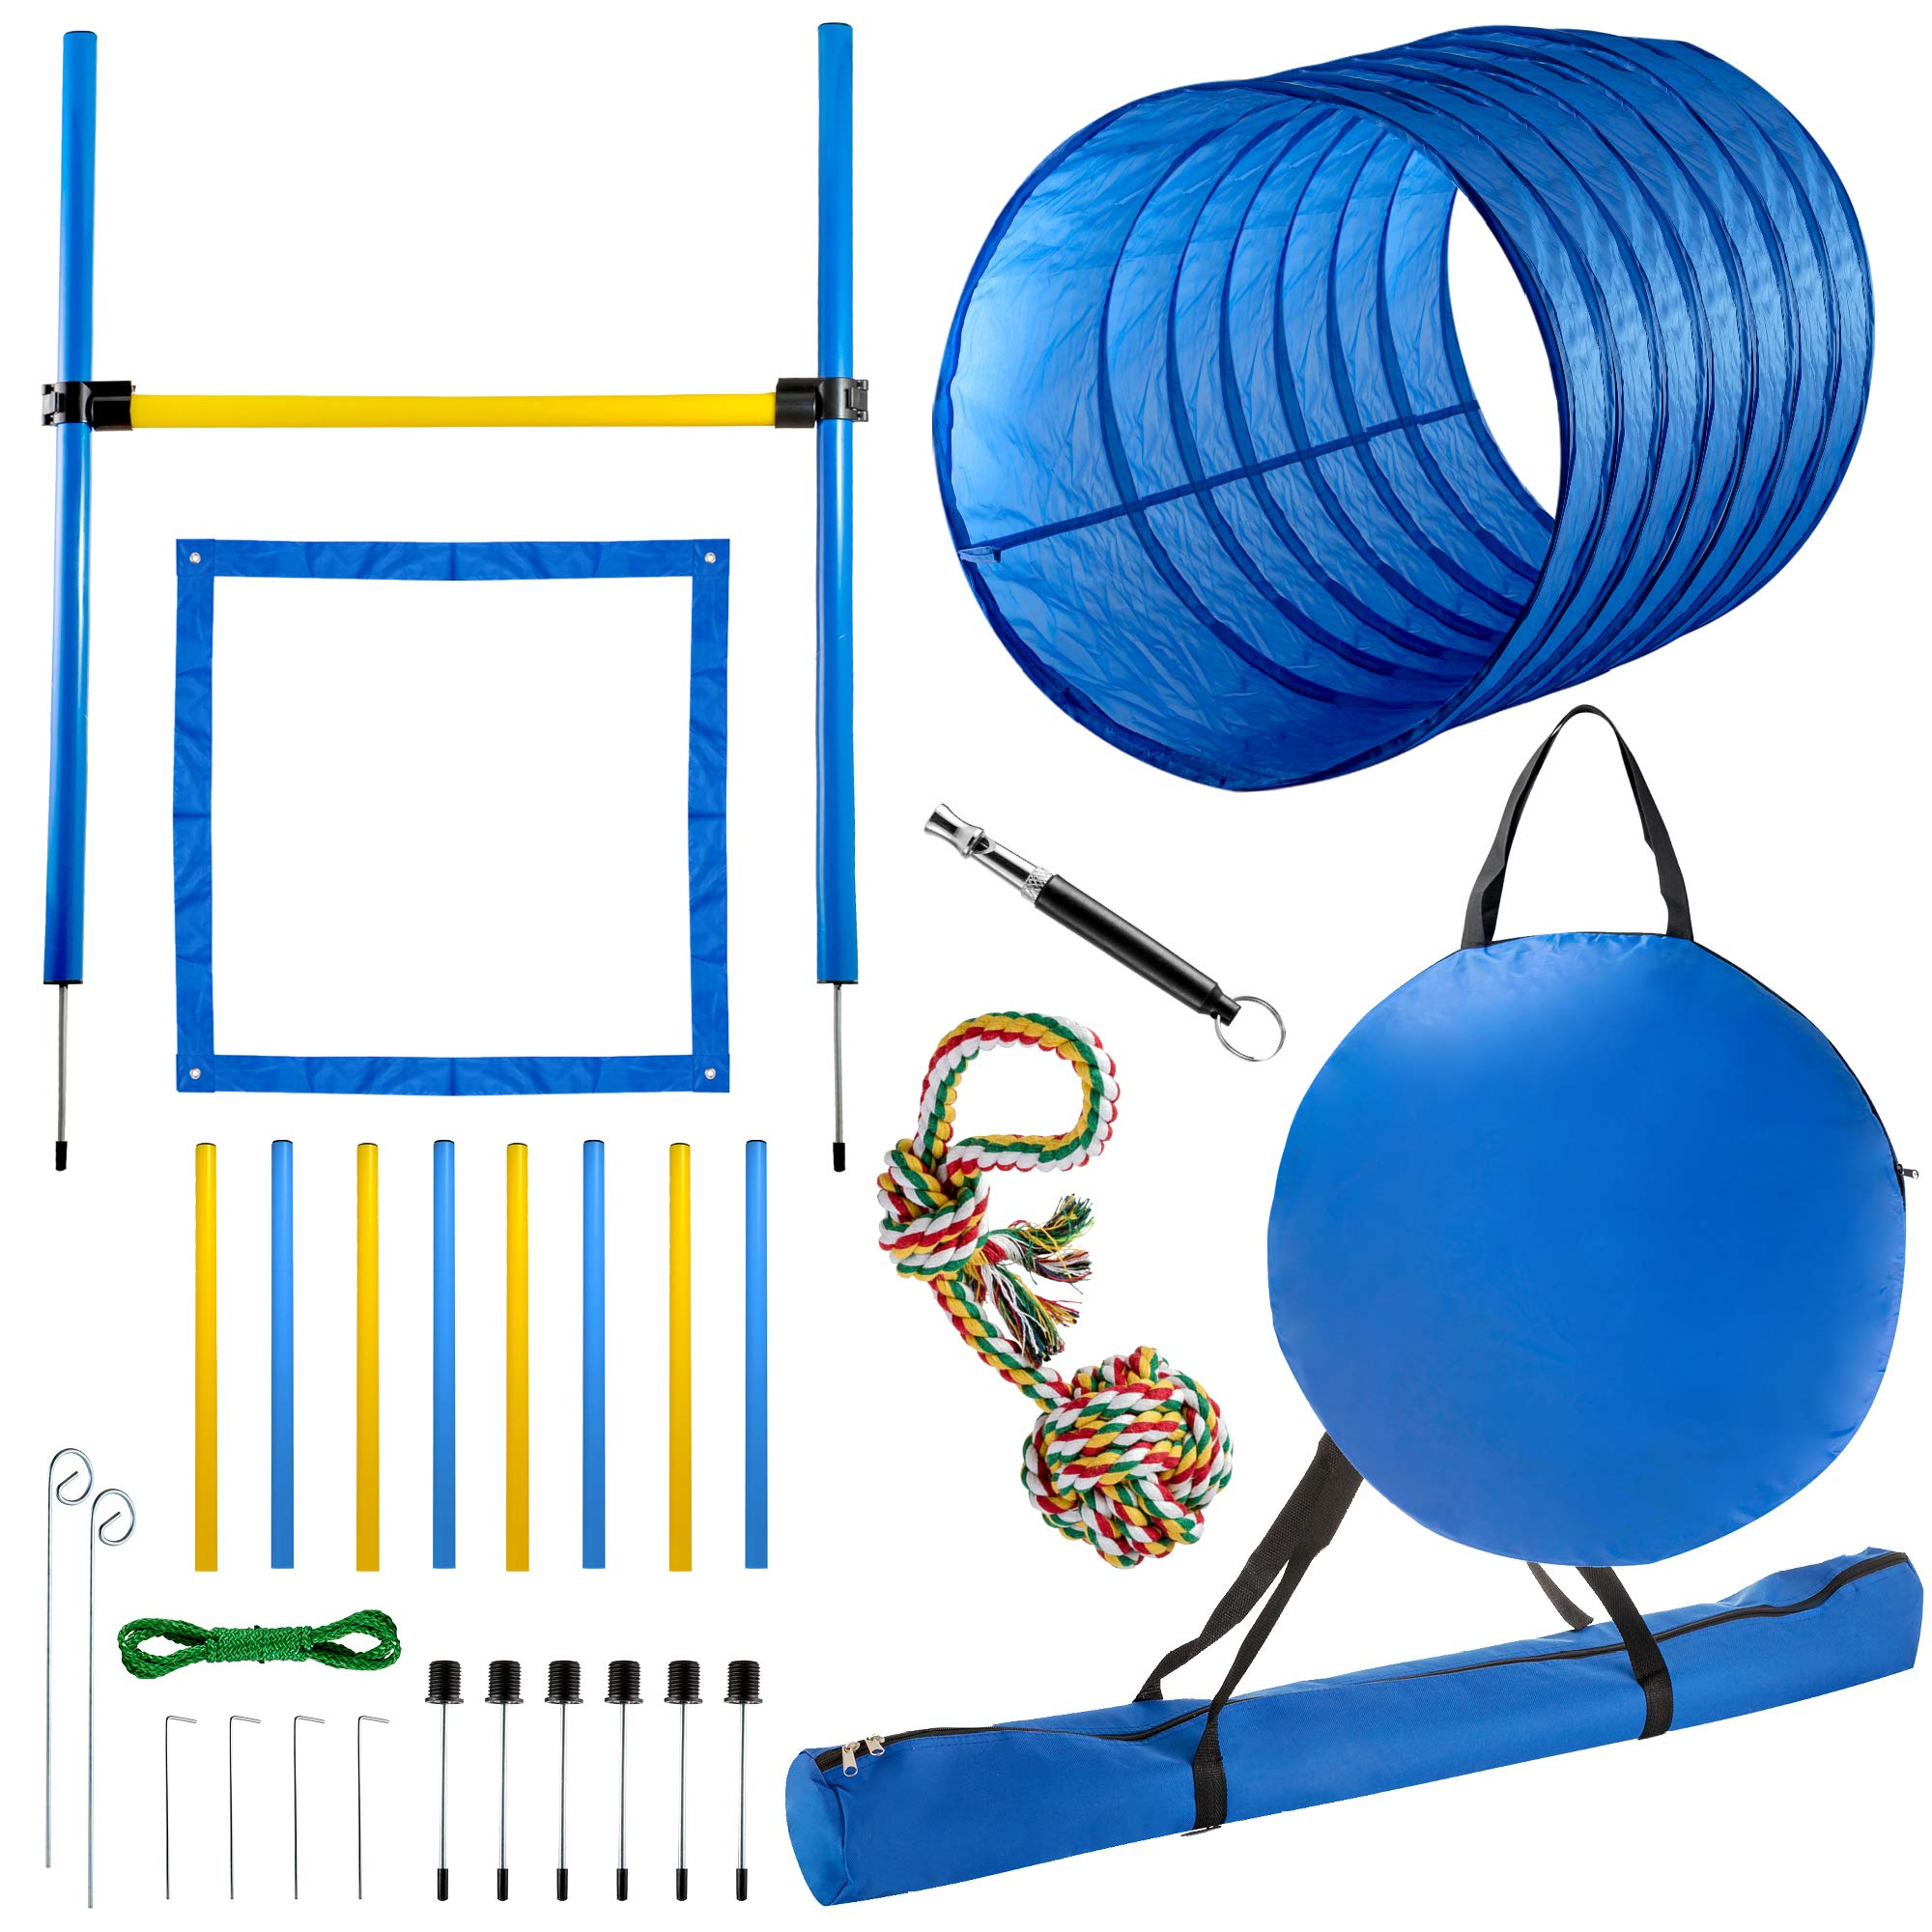 CHEERING PET Dog Agility Equipment - 28 Piece Dog Obstacle Course for Training and Interactive Play Includes Tunnel, Adjustable Hurdles, Poles, Whistle, Rope Toy with Carrying Case by CHEERING PET